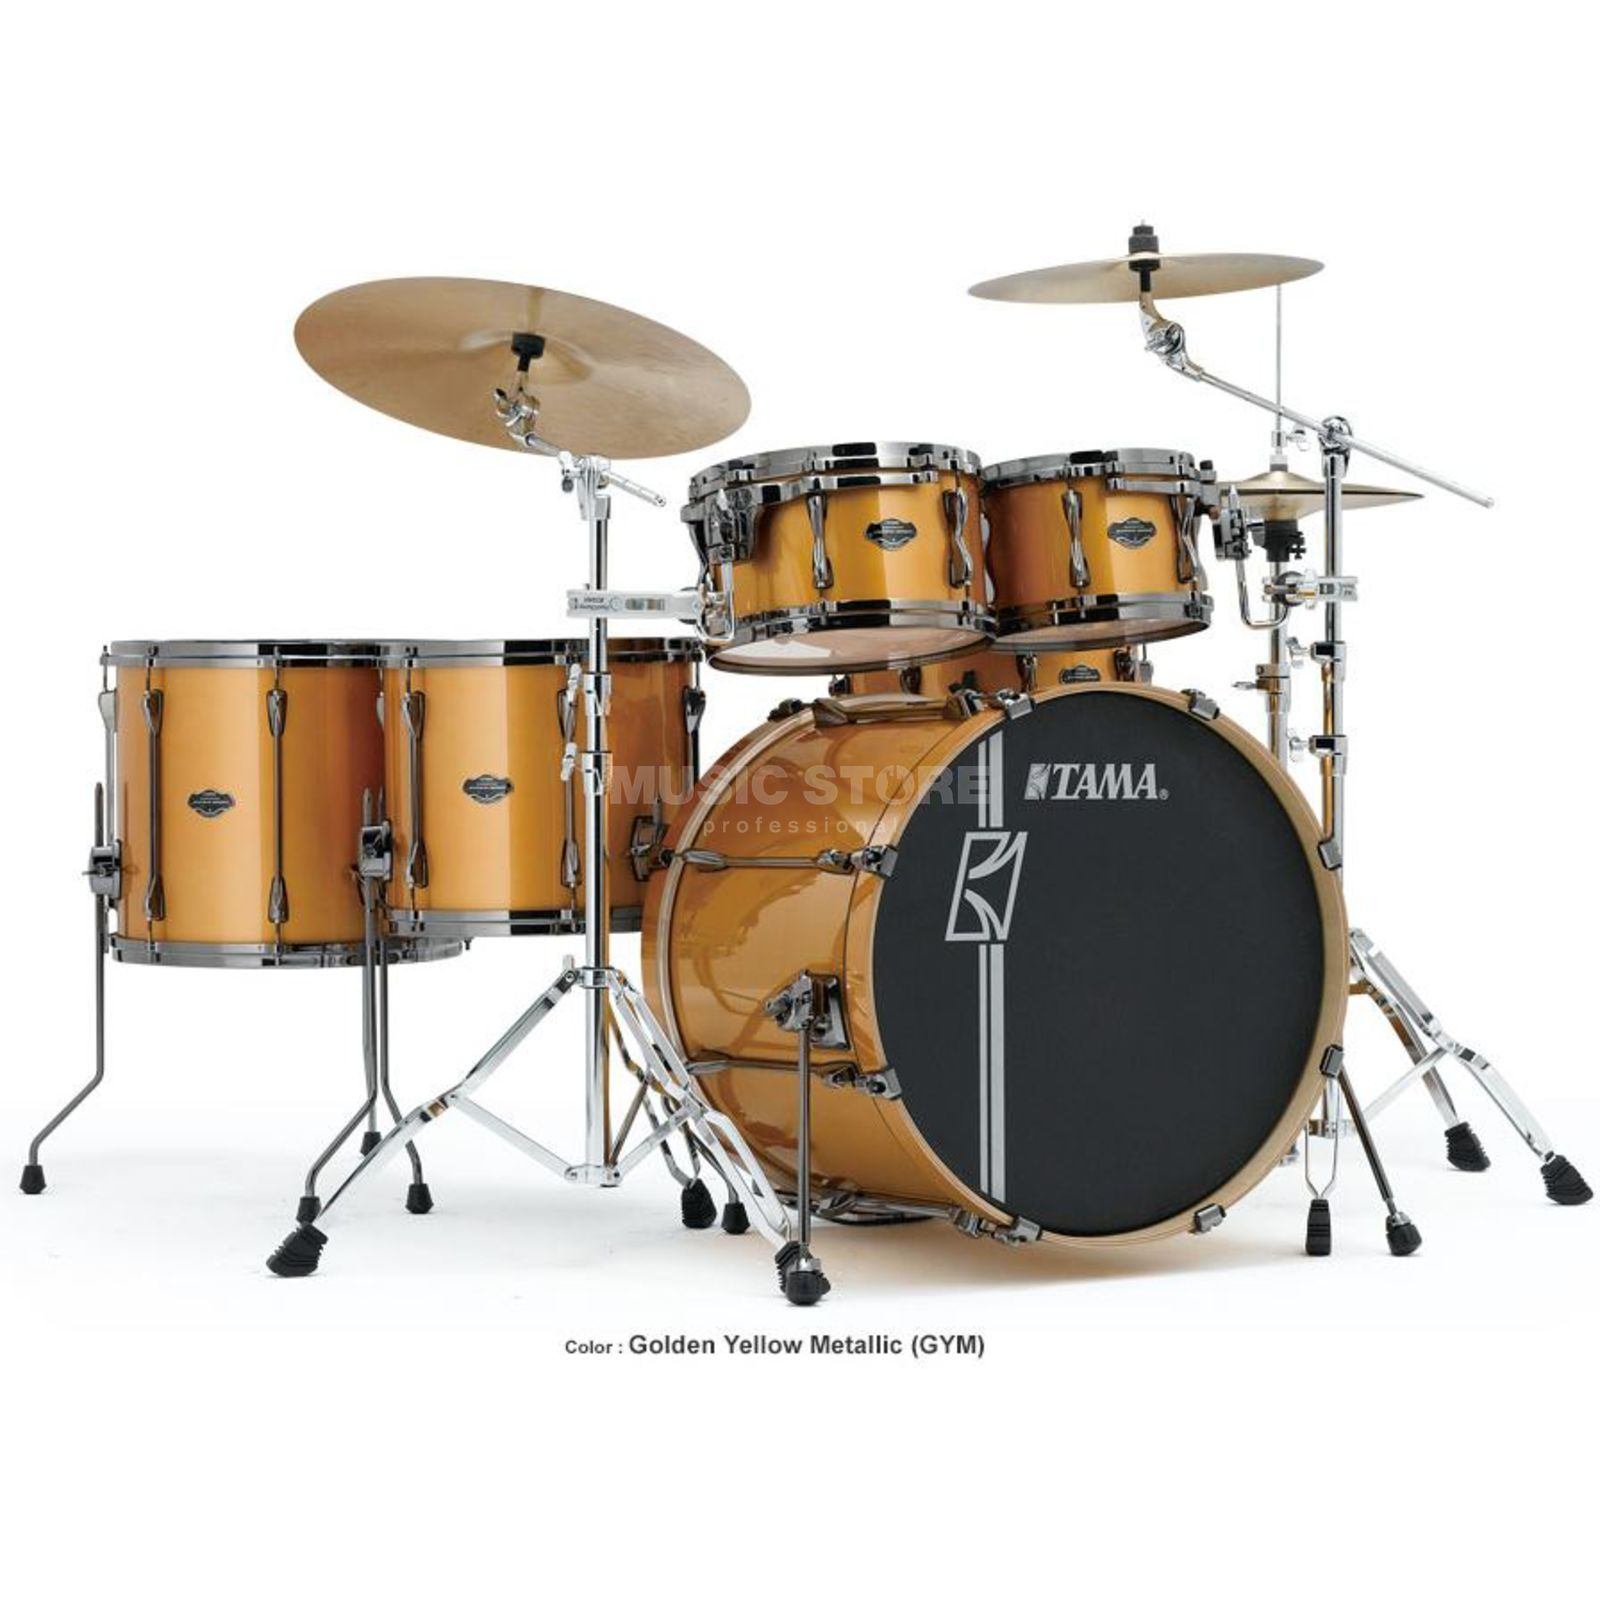 Tama Superstar HD Maple ML52HZBN, Golden Yellow Metallic, GYM Produktbillede